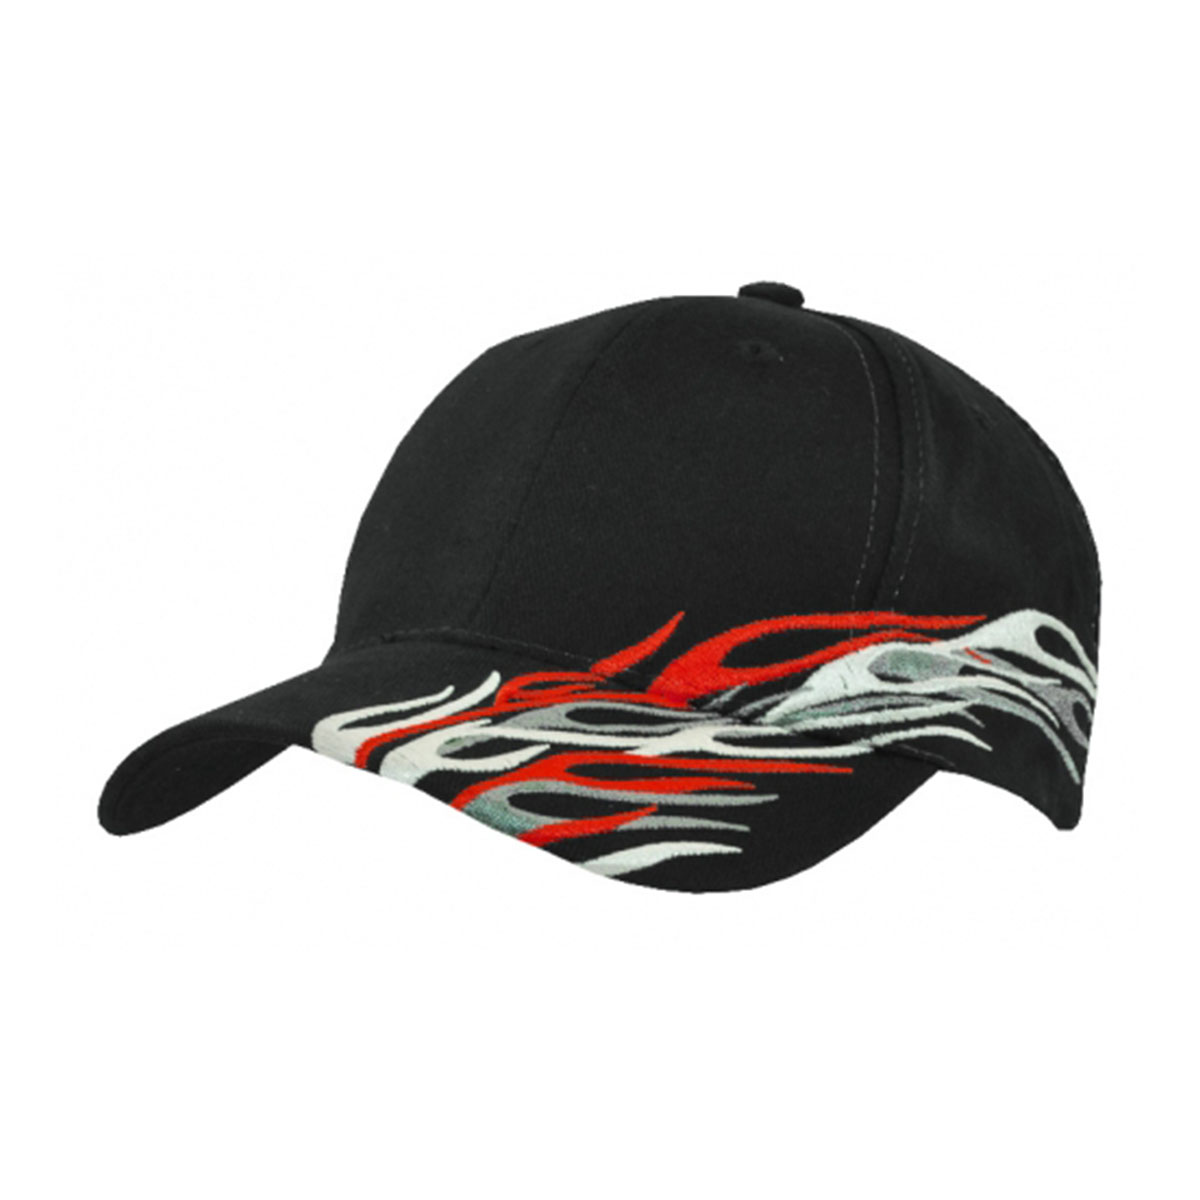 Cyclone Cap-Black / White / Grey / Red